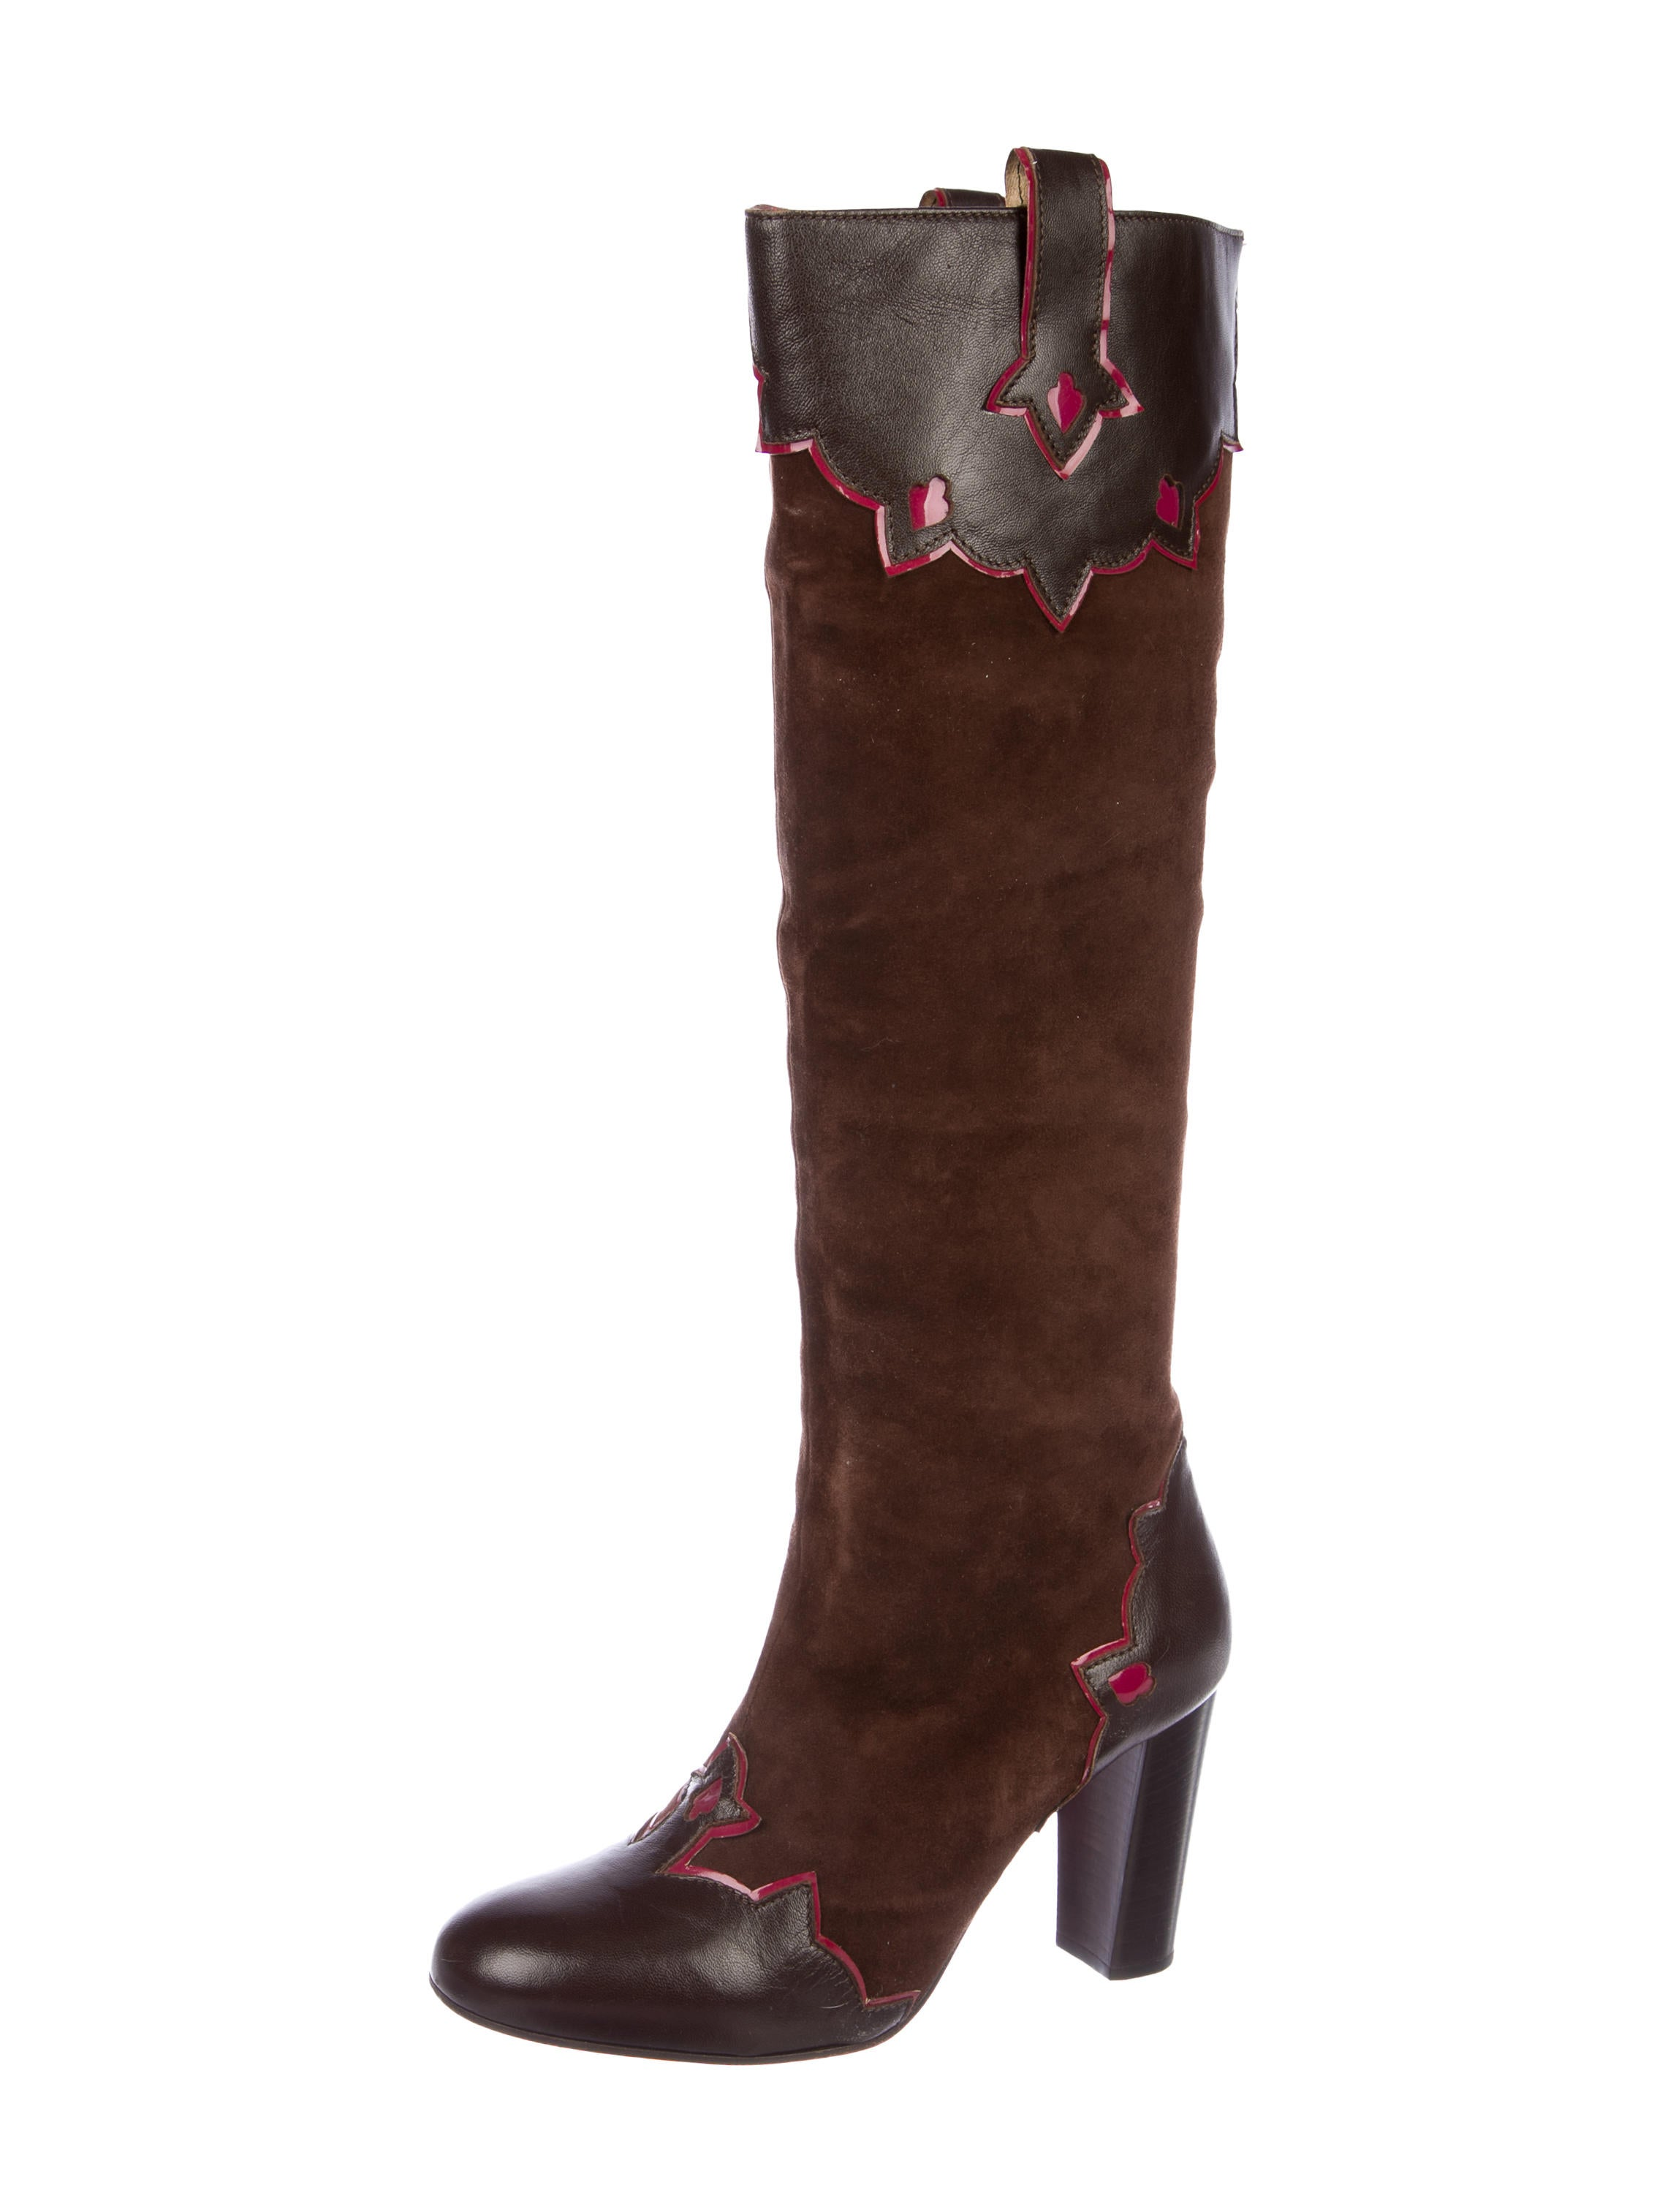 Matthew Williamson Knee-High Suede Boots shop for sale j5gyXWxGr